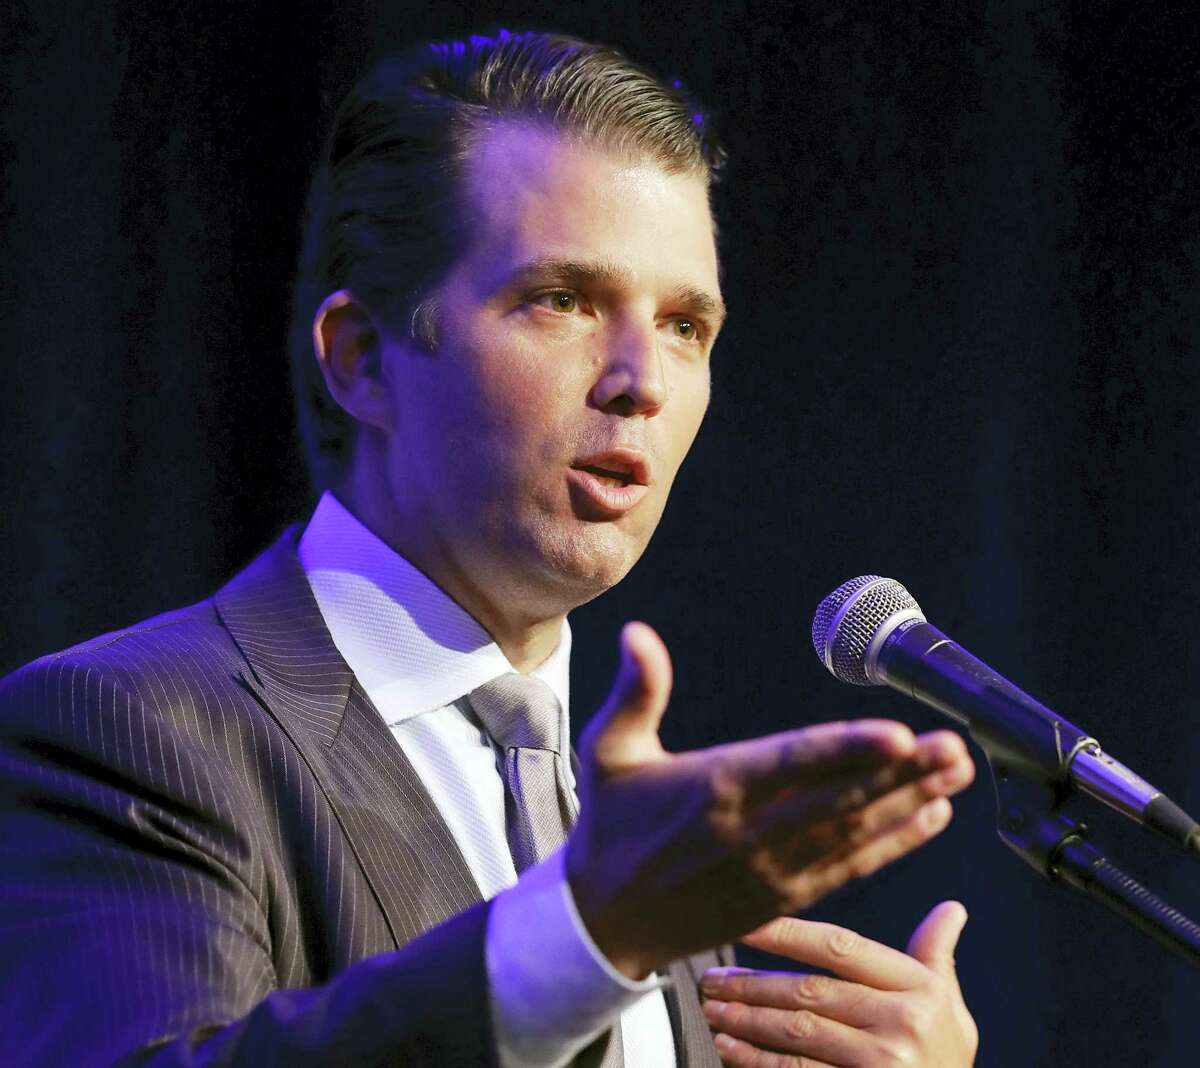 In this file photo, Donald Trump Jr. speaks in Indianapolis. President Donald Trump's eldest son acknowledged Monday that he met a Russian lawyer during the 2016 presidential campaign to hear information about his father's Democratic opponent, Hillary Clinton.